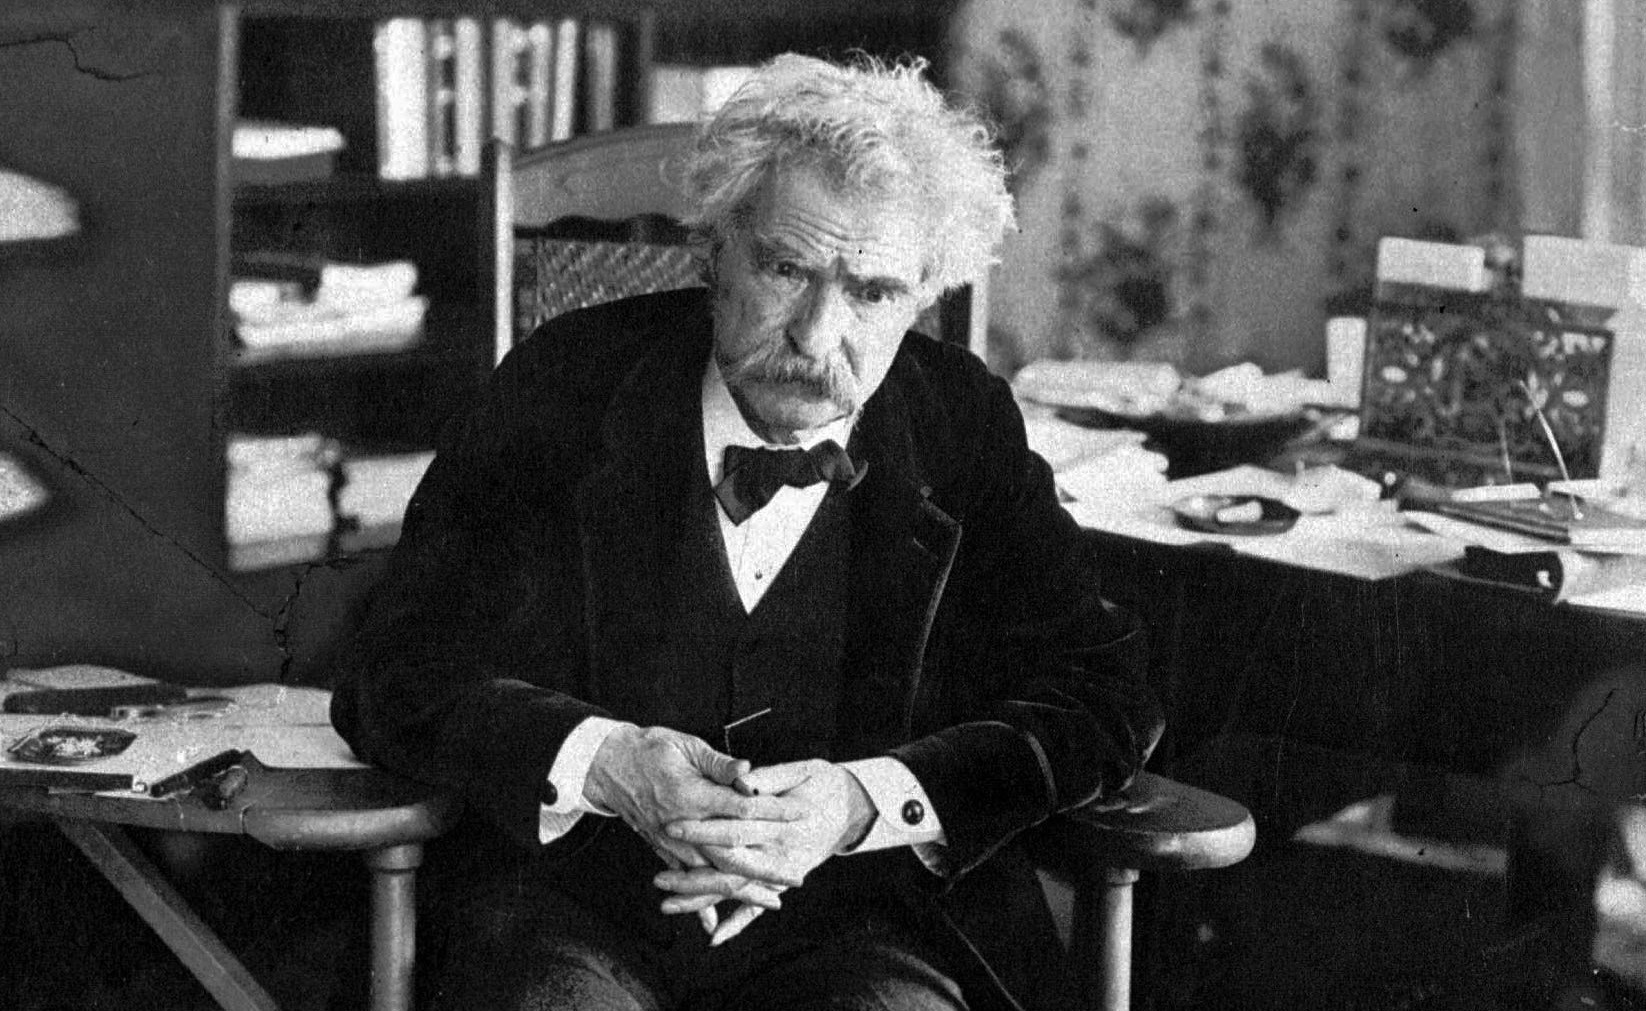 racism in mark twains writing Lindsay parnell looks at the works of mark twain, who is considered the father of american literature and an inimitable icon of american culture.